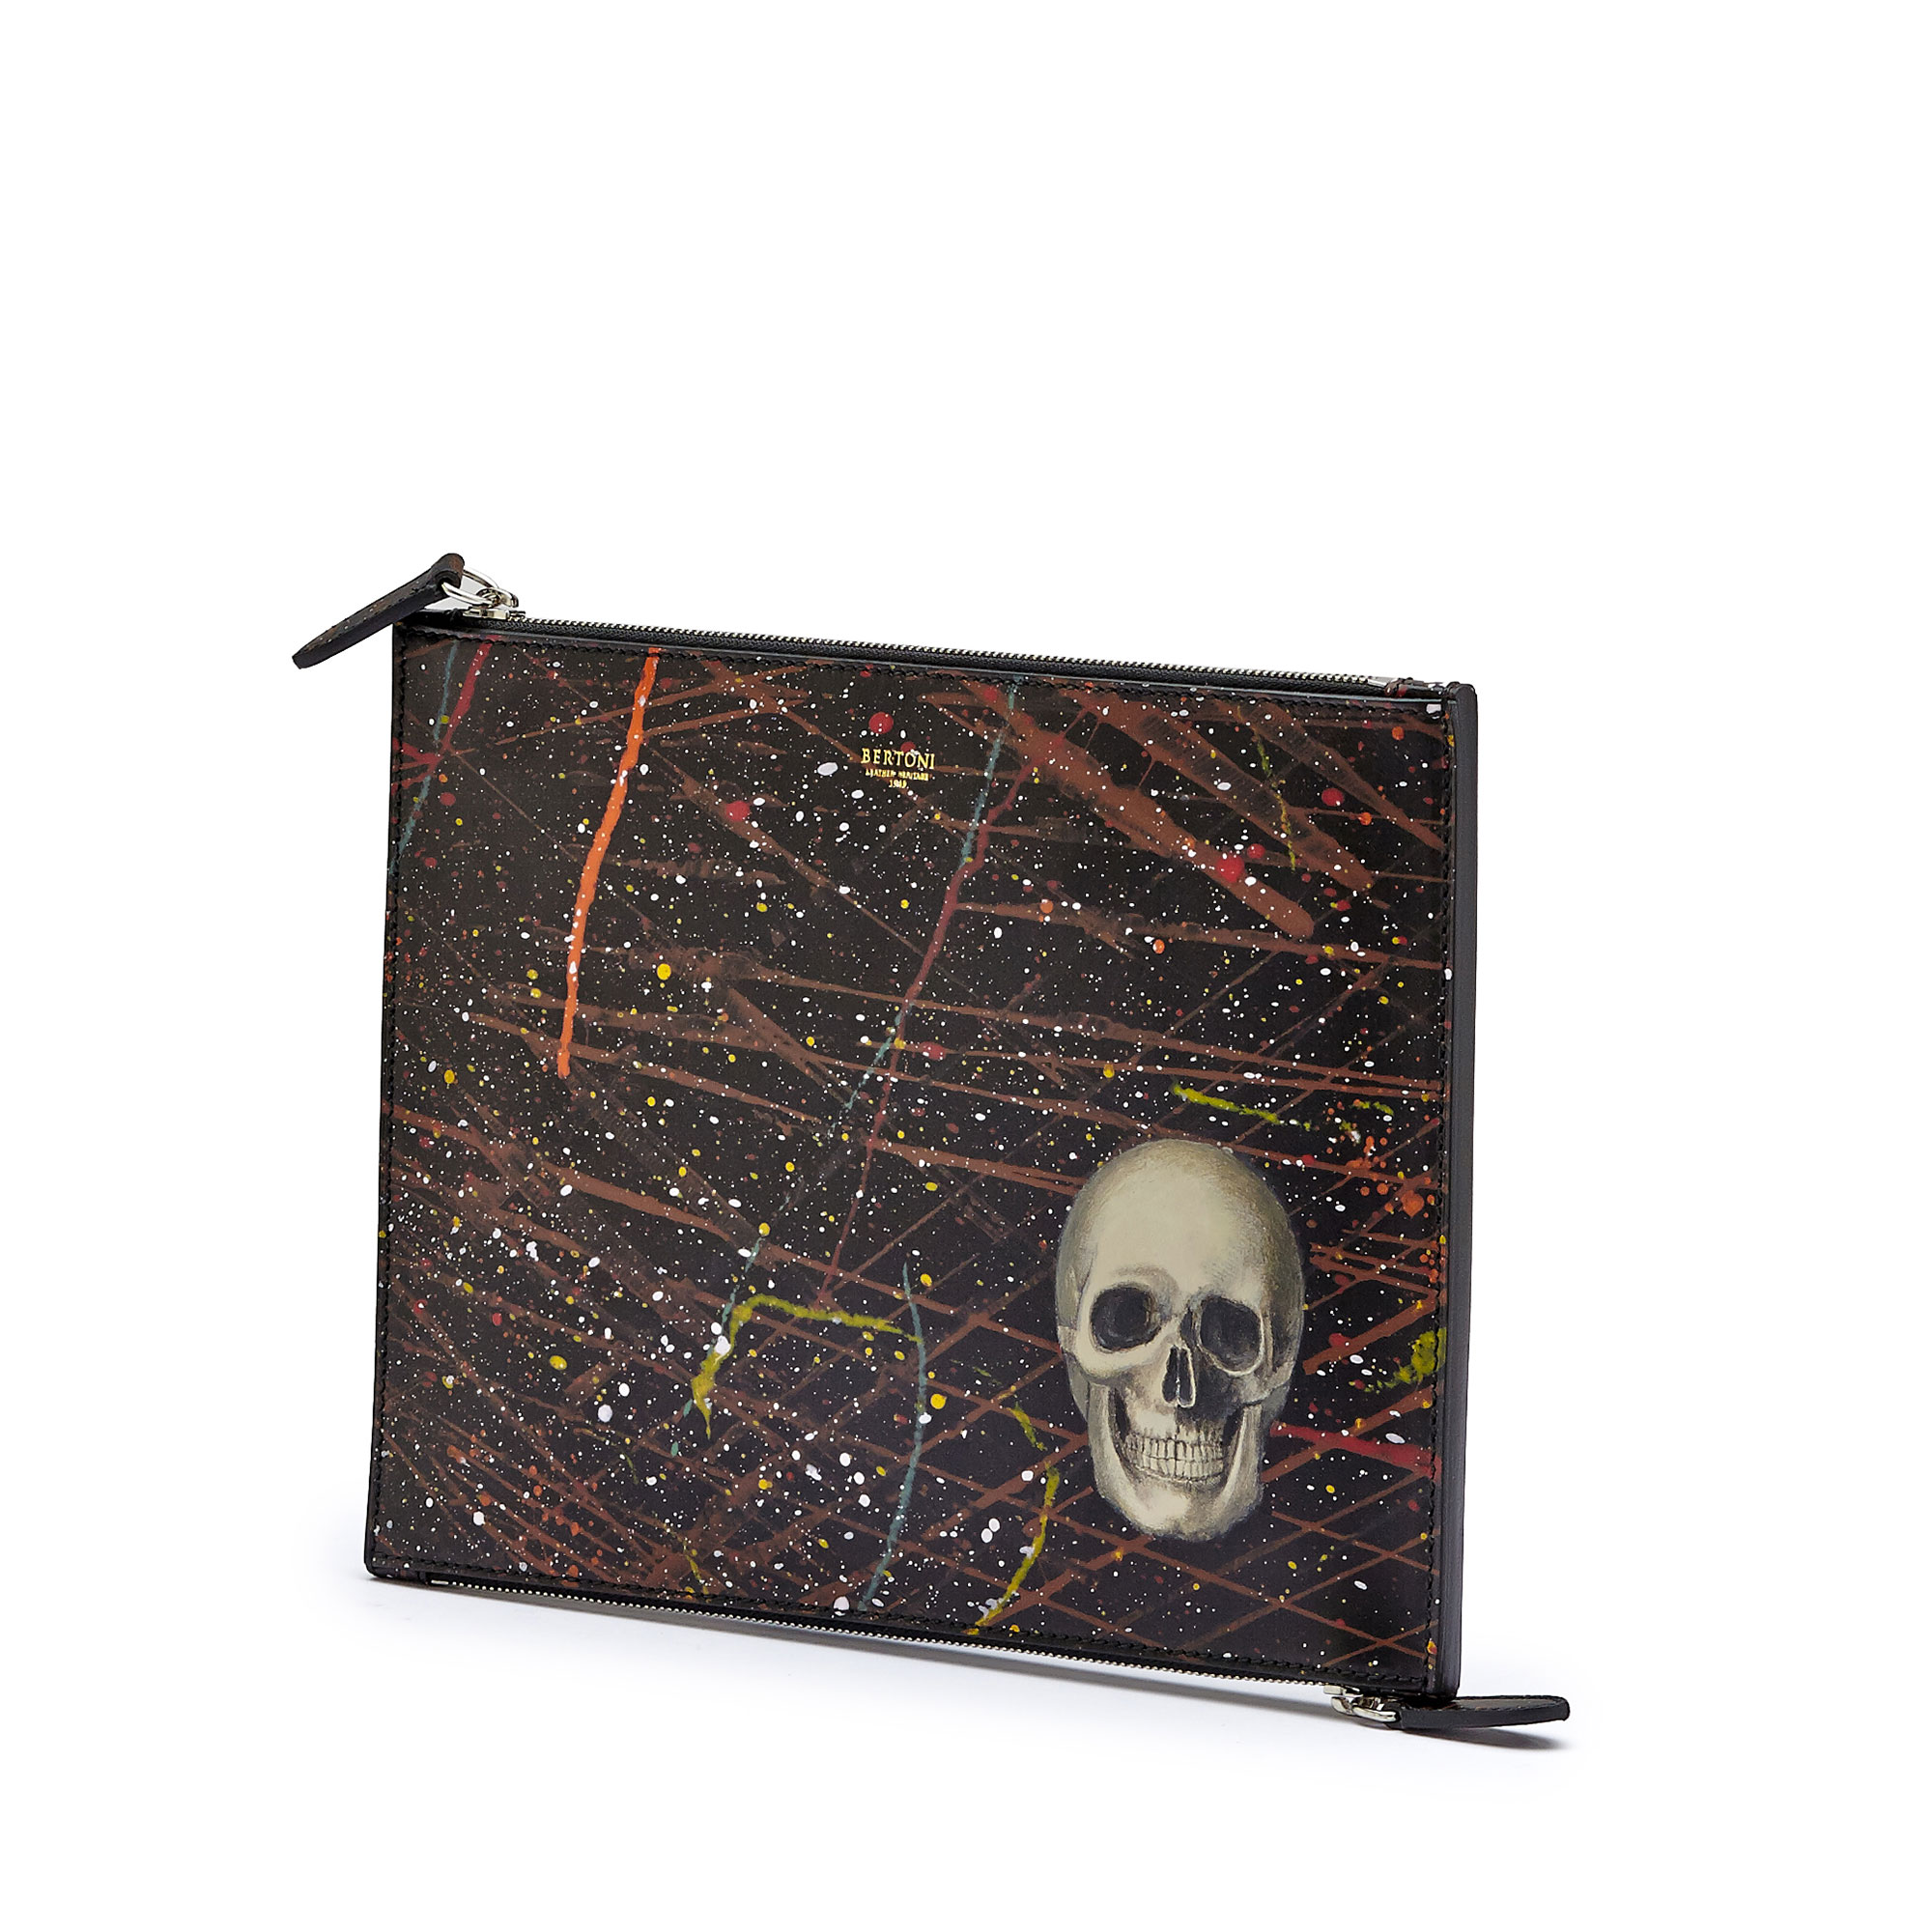 The black with skull french calf Zip Pouch by Bertoni 1949 02